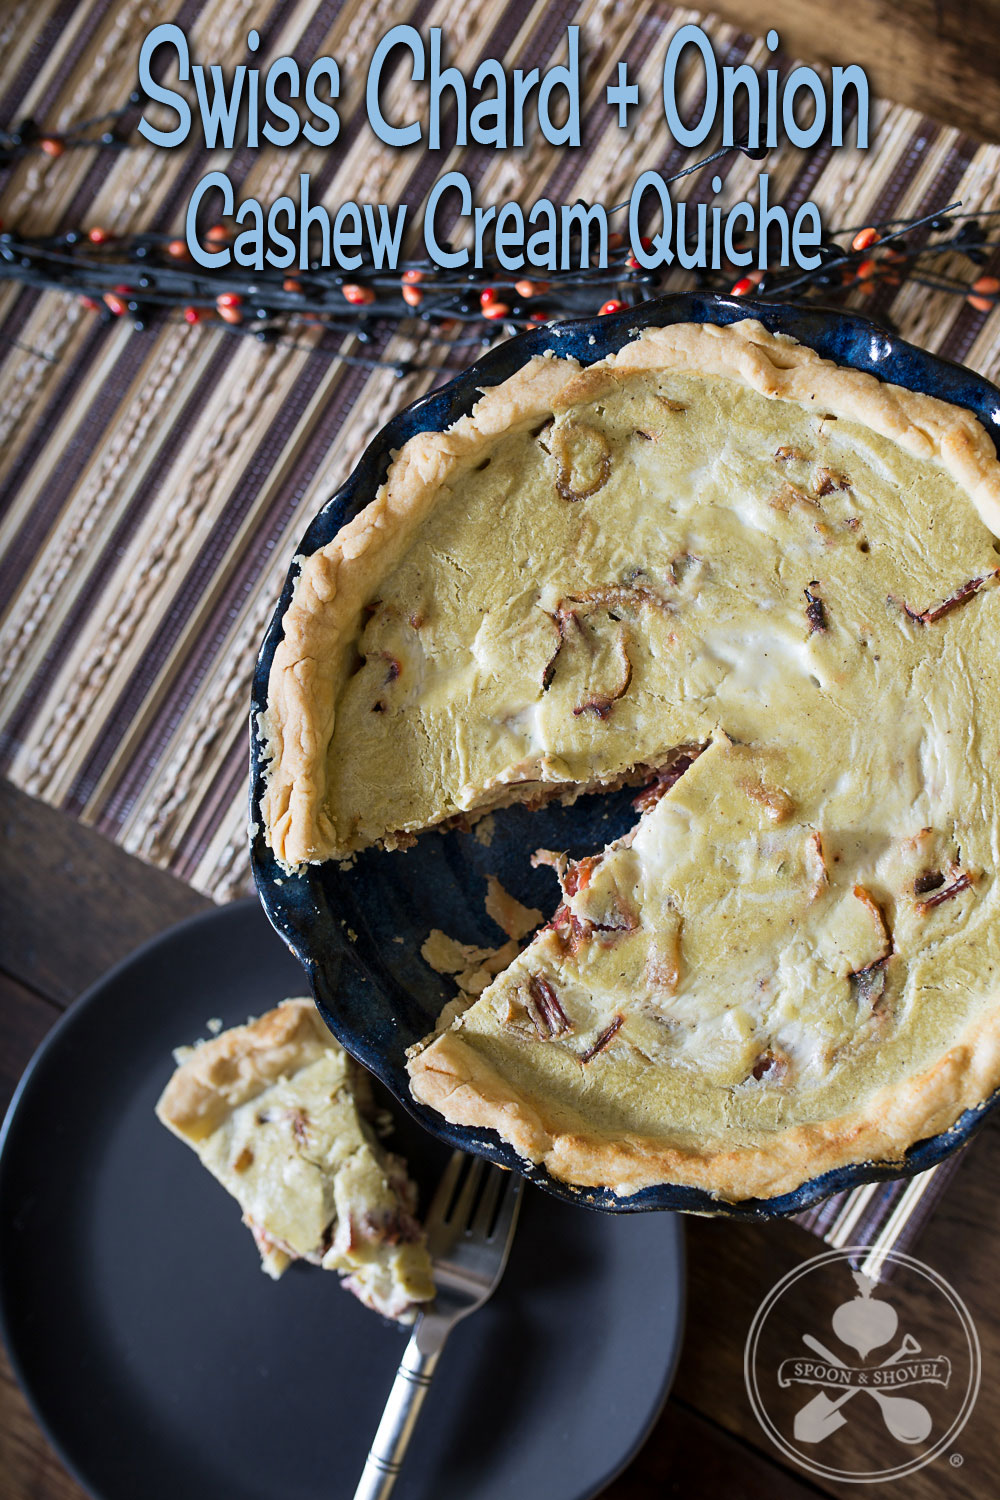 Swiss chard, onion and cashew cream quiche from The Spoon + Shovel